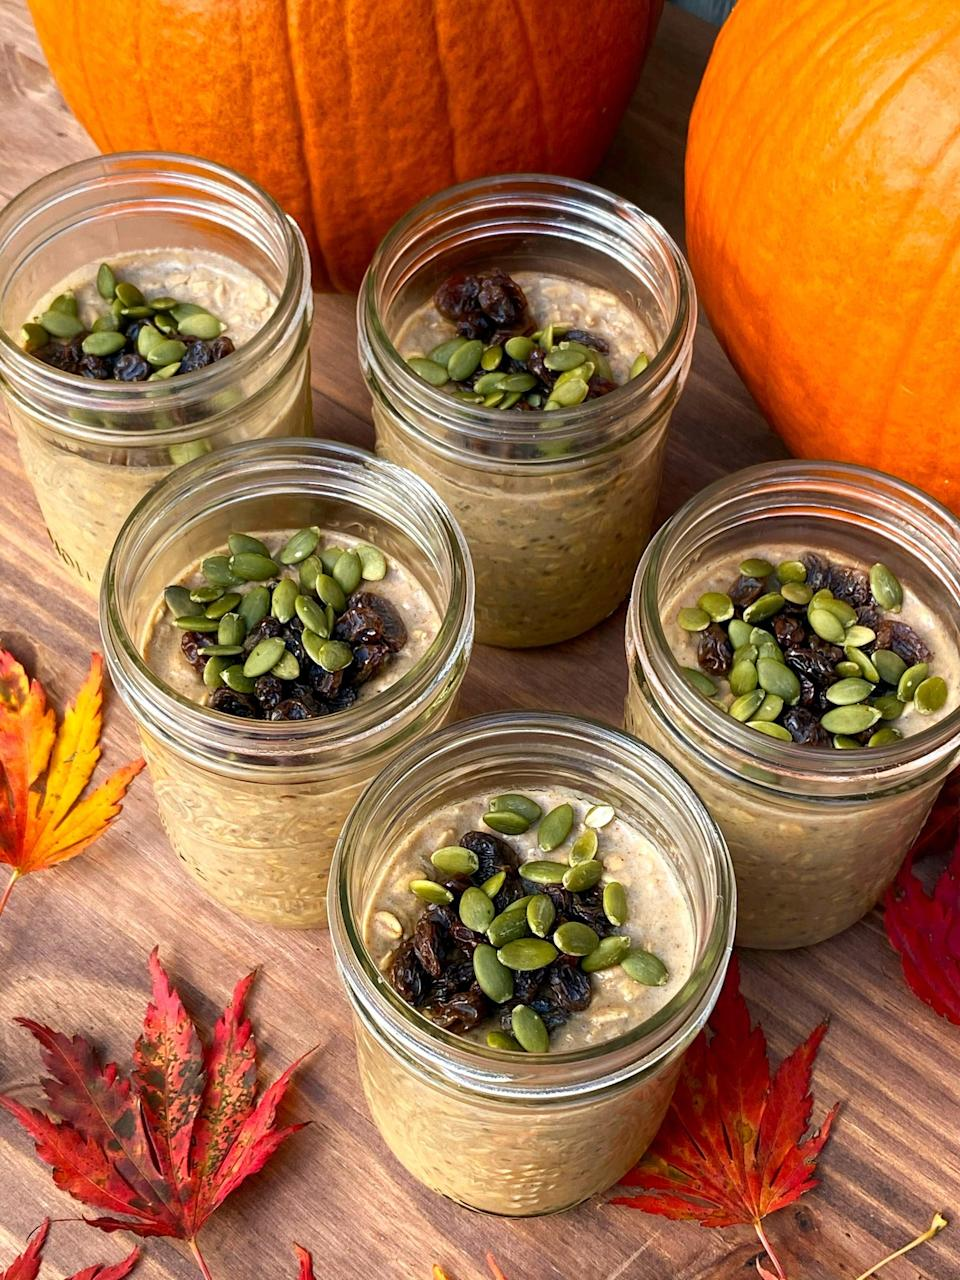 """<p>This perfectly spiced pumpkin pie overnight oats recipe makes five jars at once, each offering 18 grams of protein.</p> <p><strong>Get the recipe:</strong> <a href=""""https://www.popsugar.com/fitness/meal-prep-week-pumpkin-spice-overnight-oats-47886850"""" class=""""link rapid-noclick-resp"""" rel=""""nofollow noopener"""" target=""""_blank"""" data-ylk=""""slk:pumpkin pie overnight oats"""">pumpkin pie overnight oats</a></p>"""